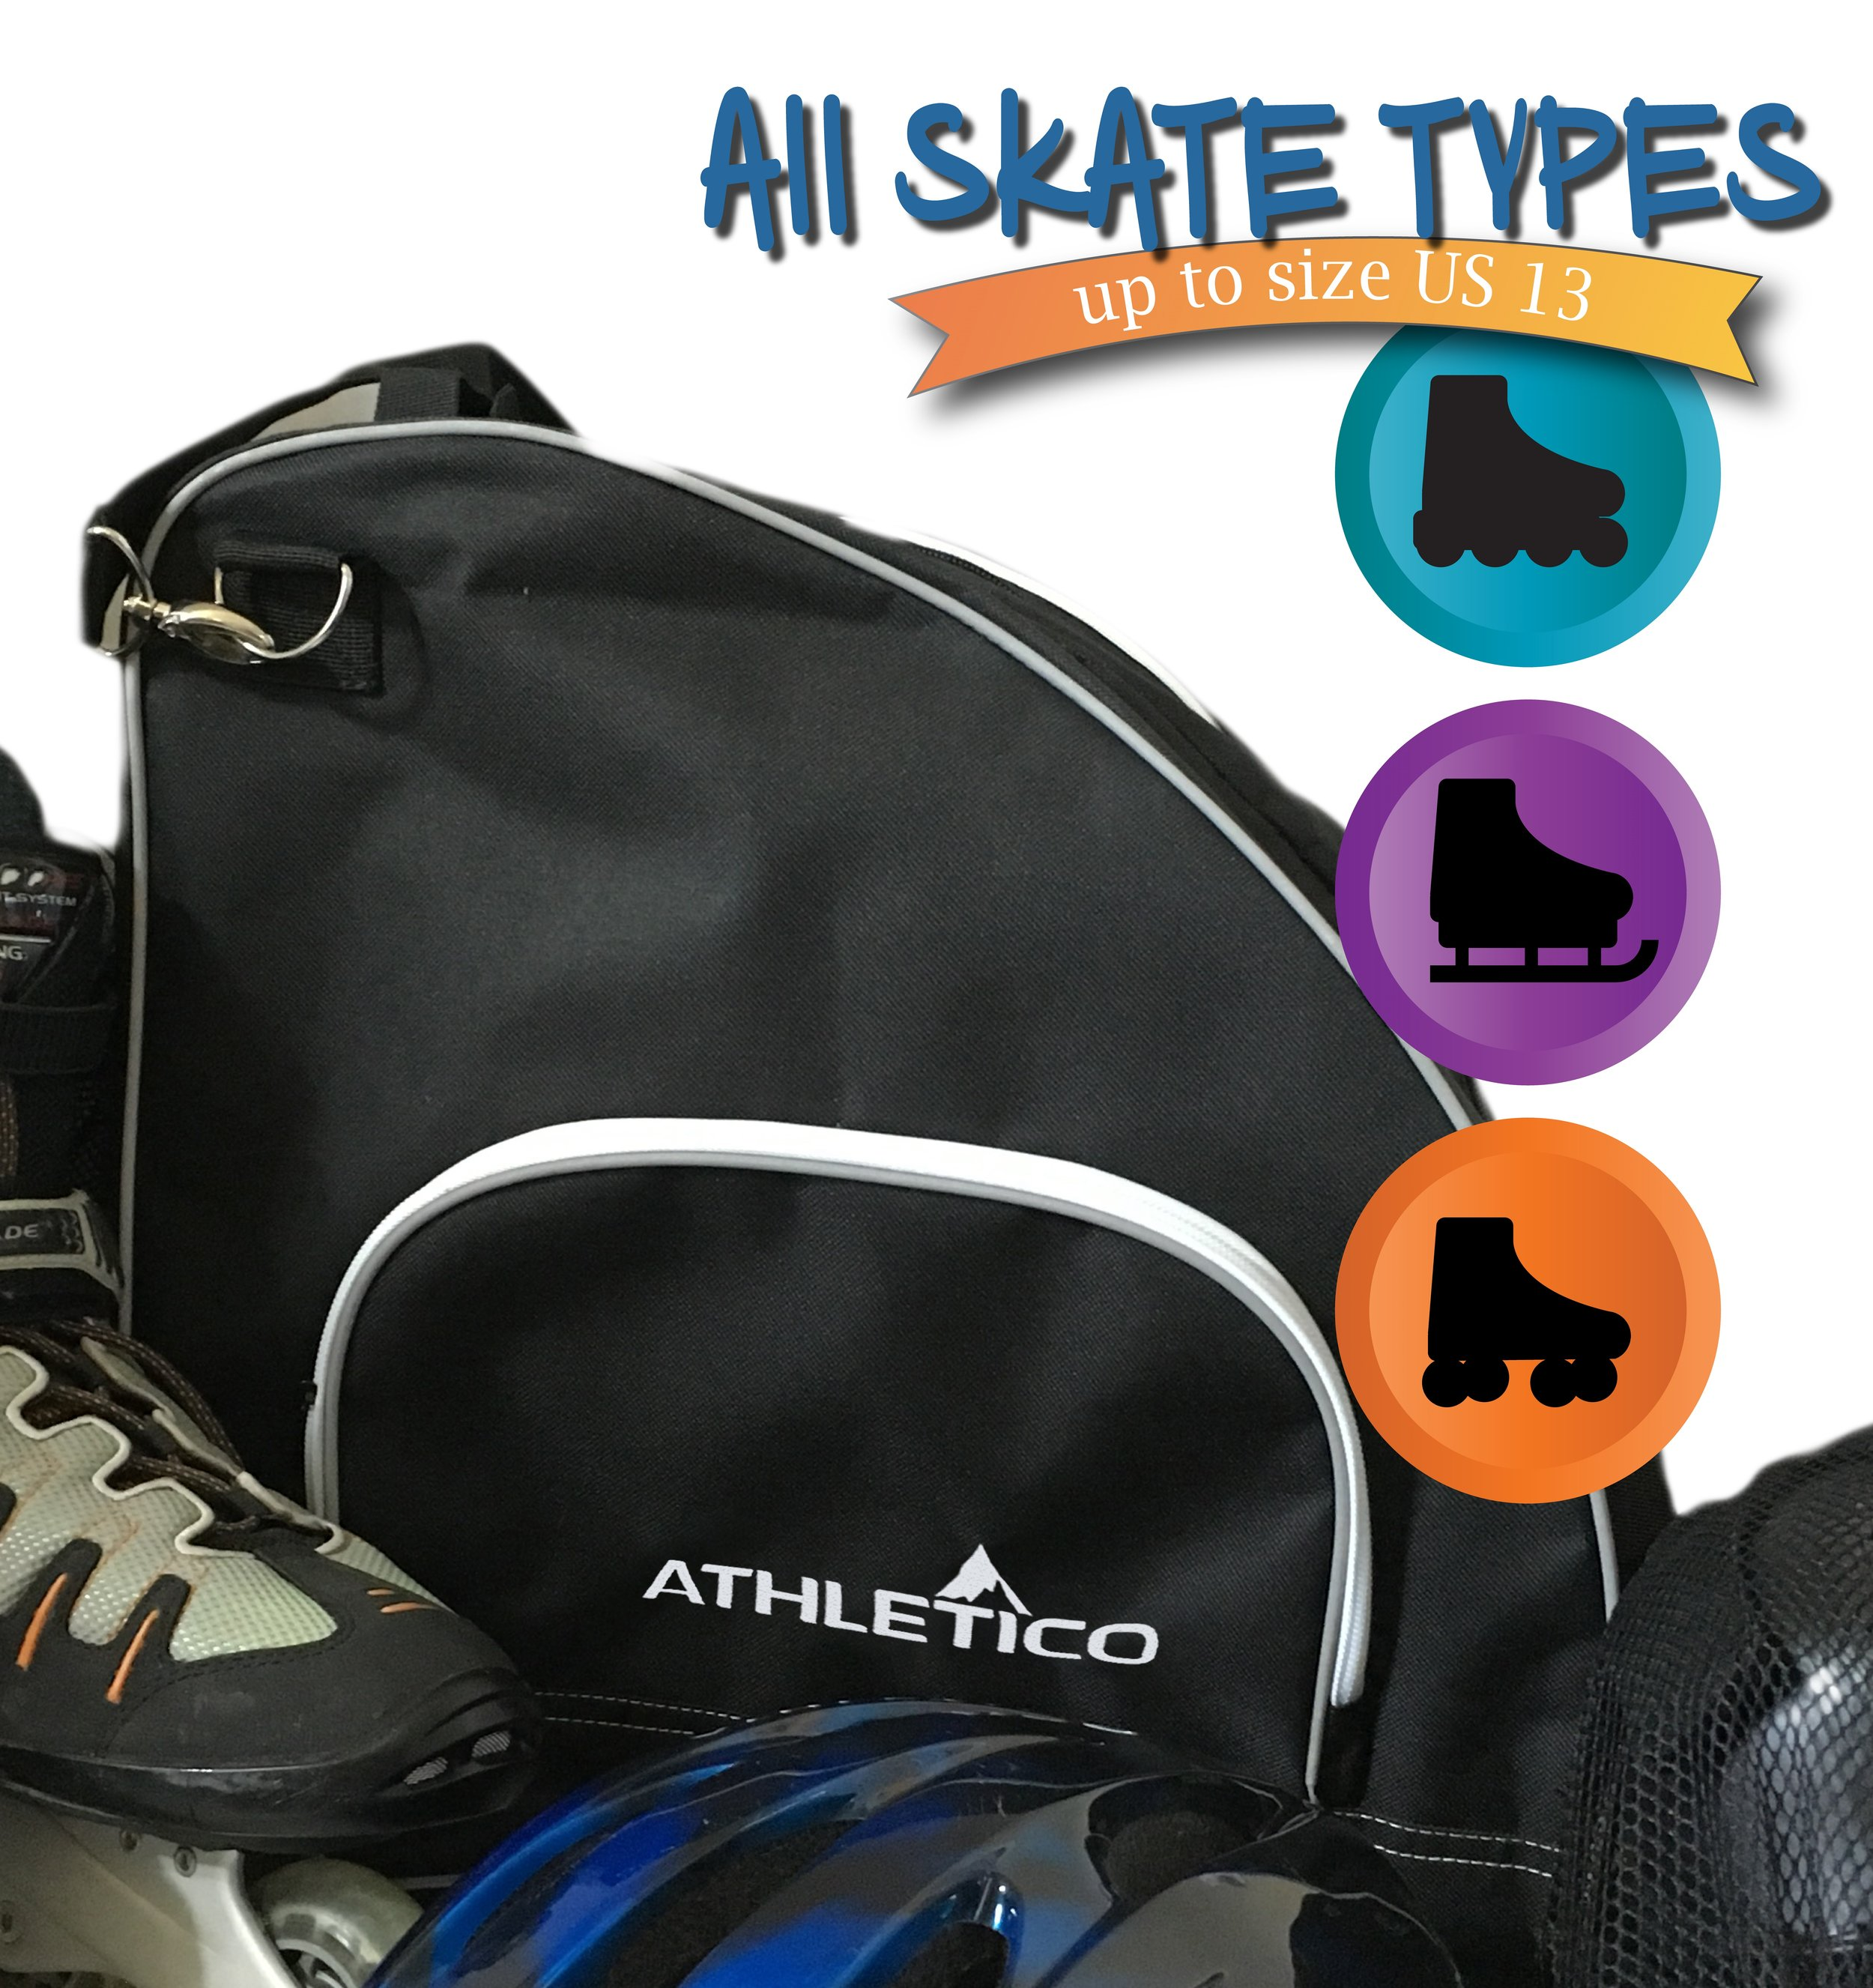 AthleticoSkateTypes-01_NL.jpg